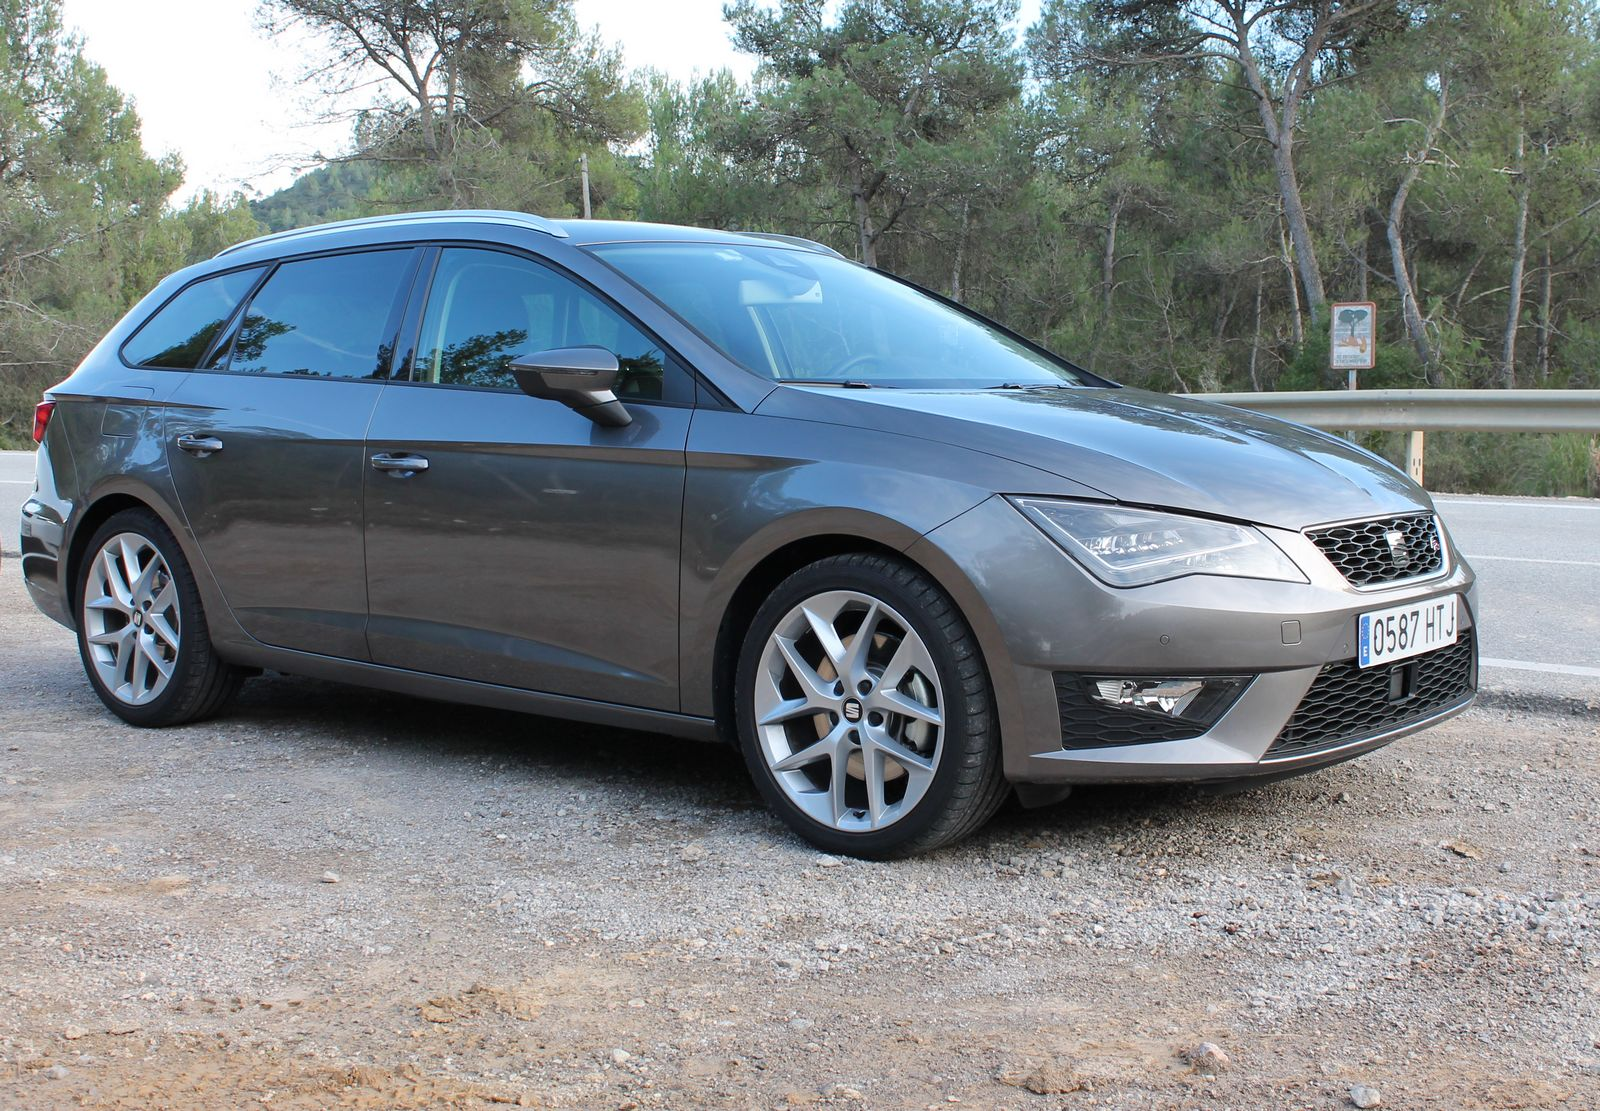 la seat leon st 2014 en tsi et tdi l 39 essai. Black Bedroom Furniture Sets. Home Design Ideas